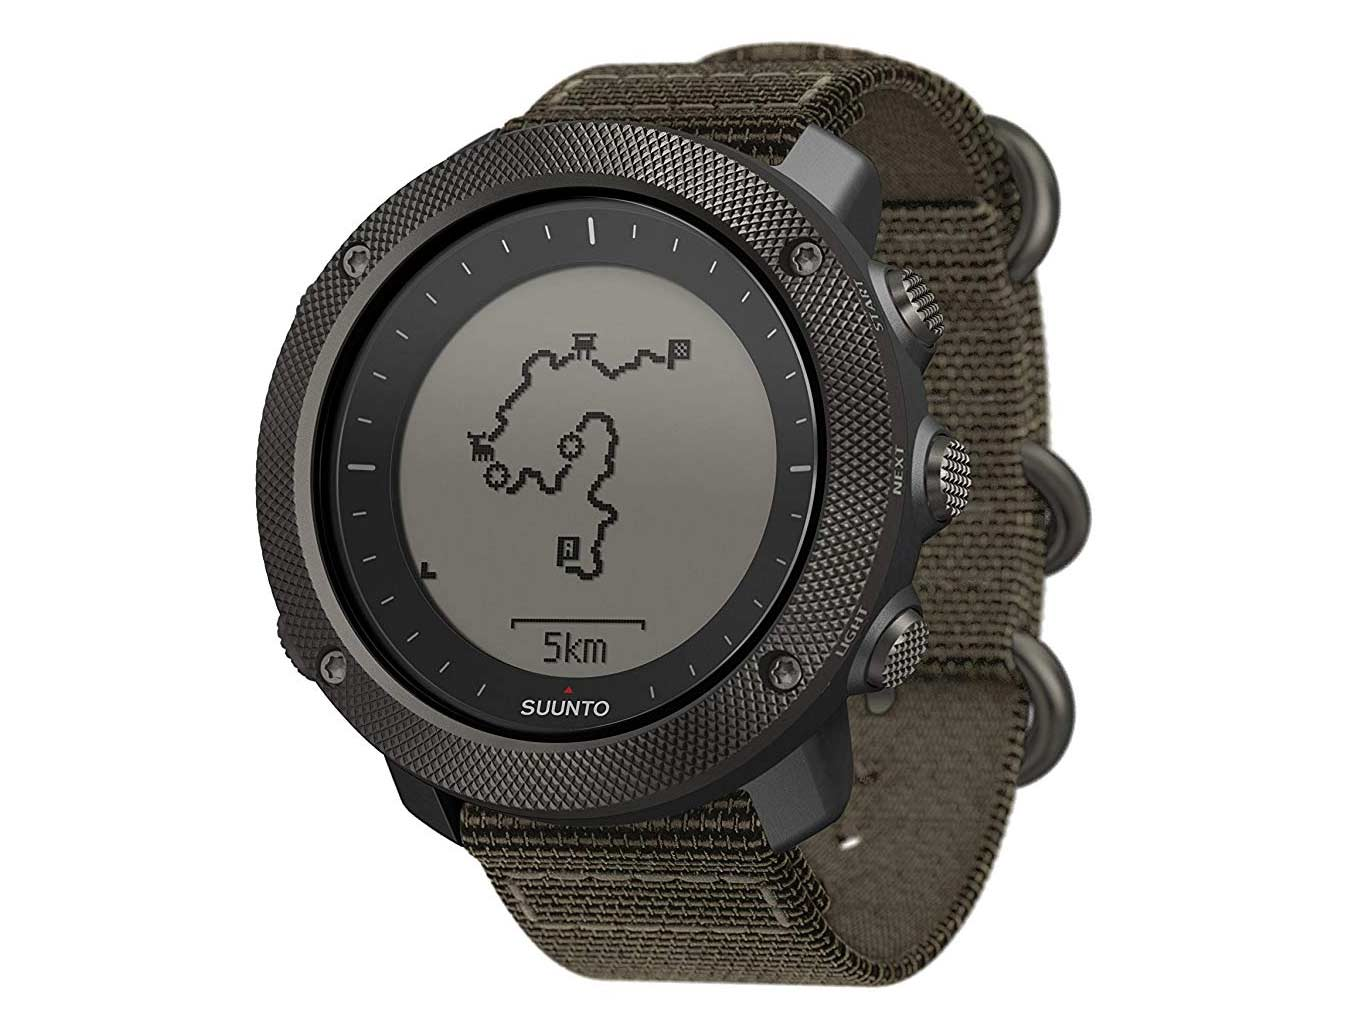 What to Look for in a GPS Watch